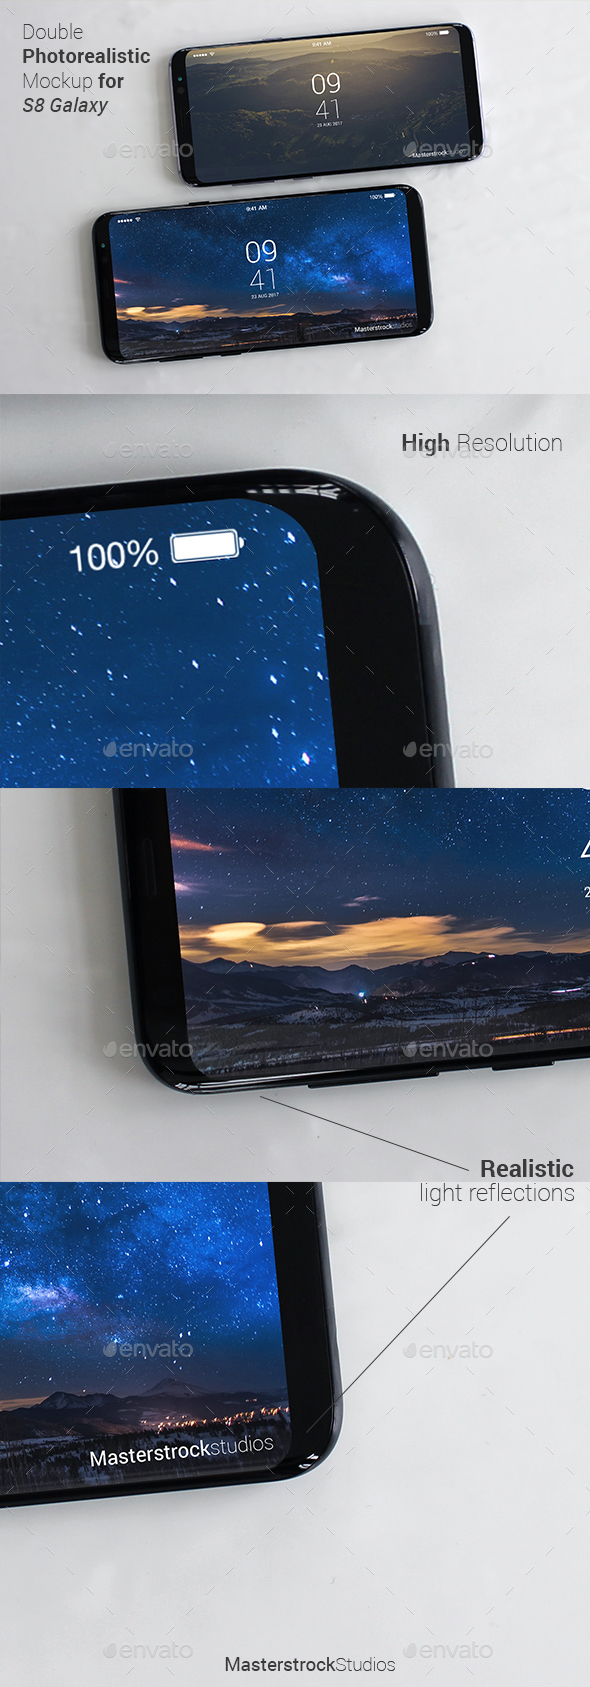 S8 Galaxy Smartphone Photo-realistic Double Mockup - Mobile Displays